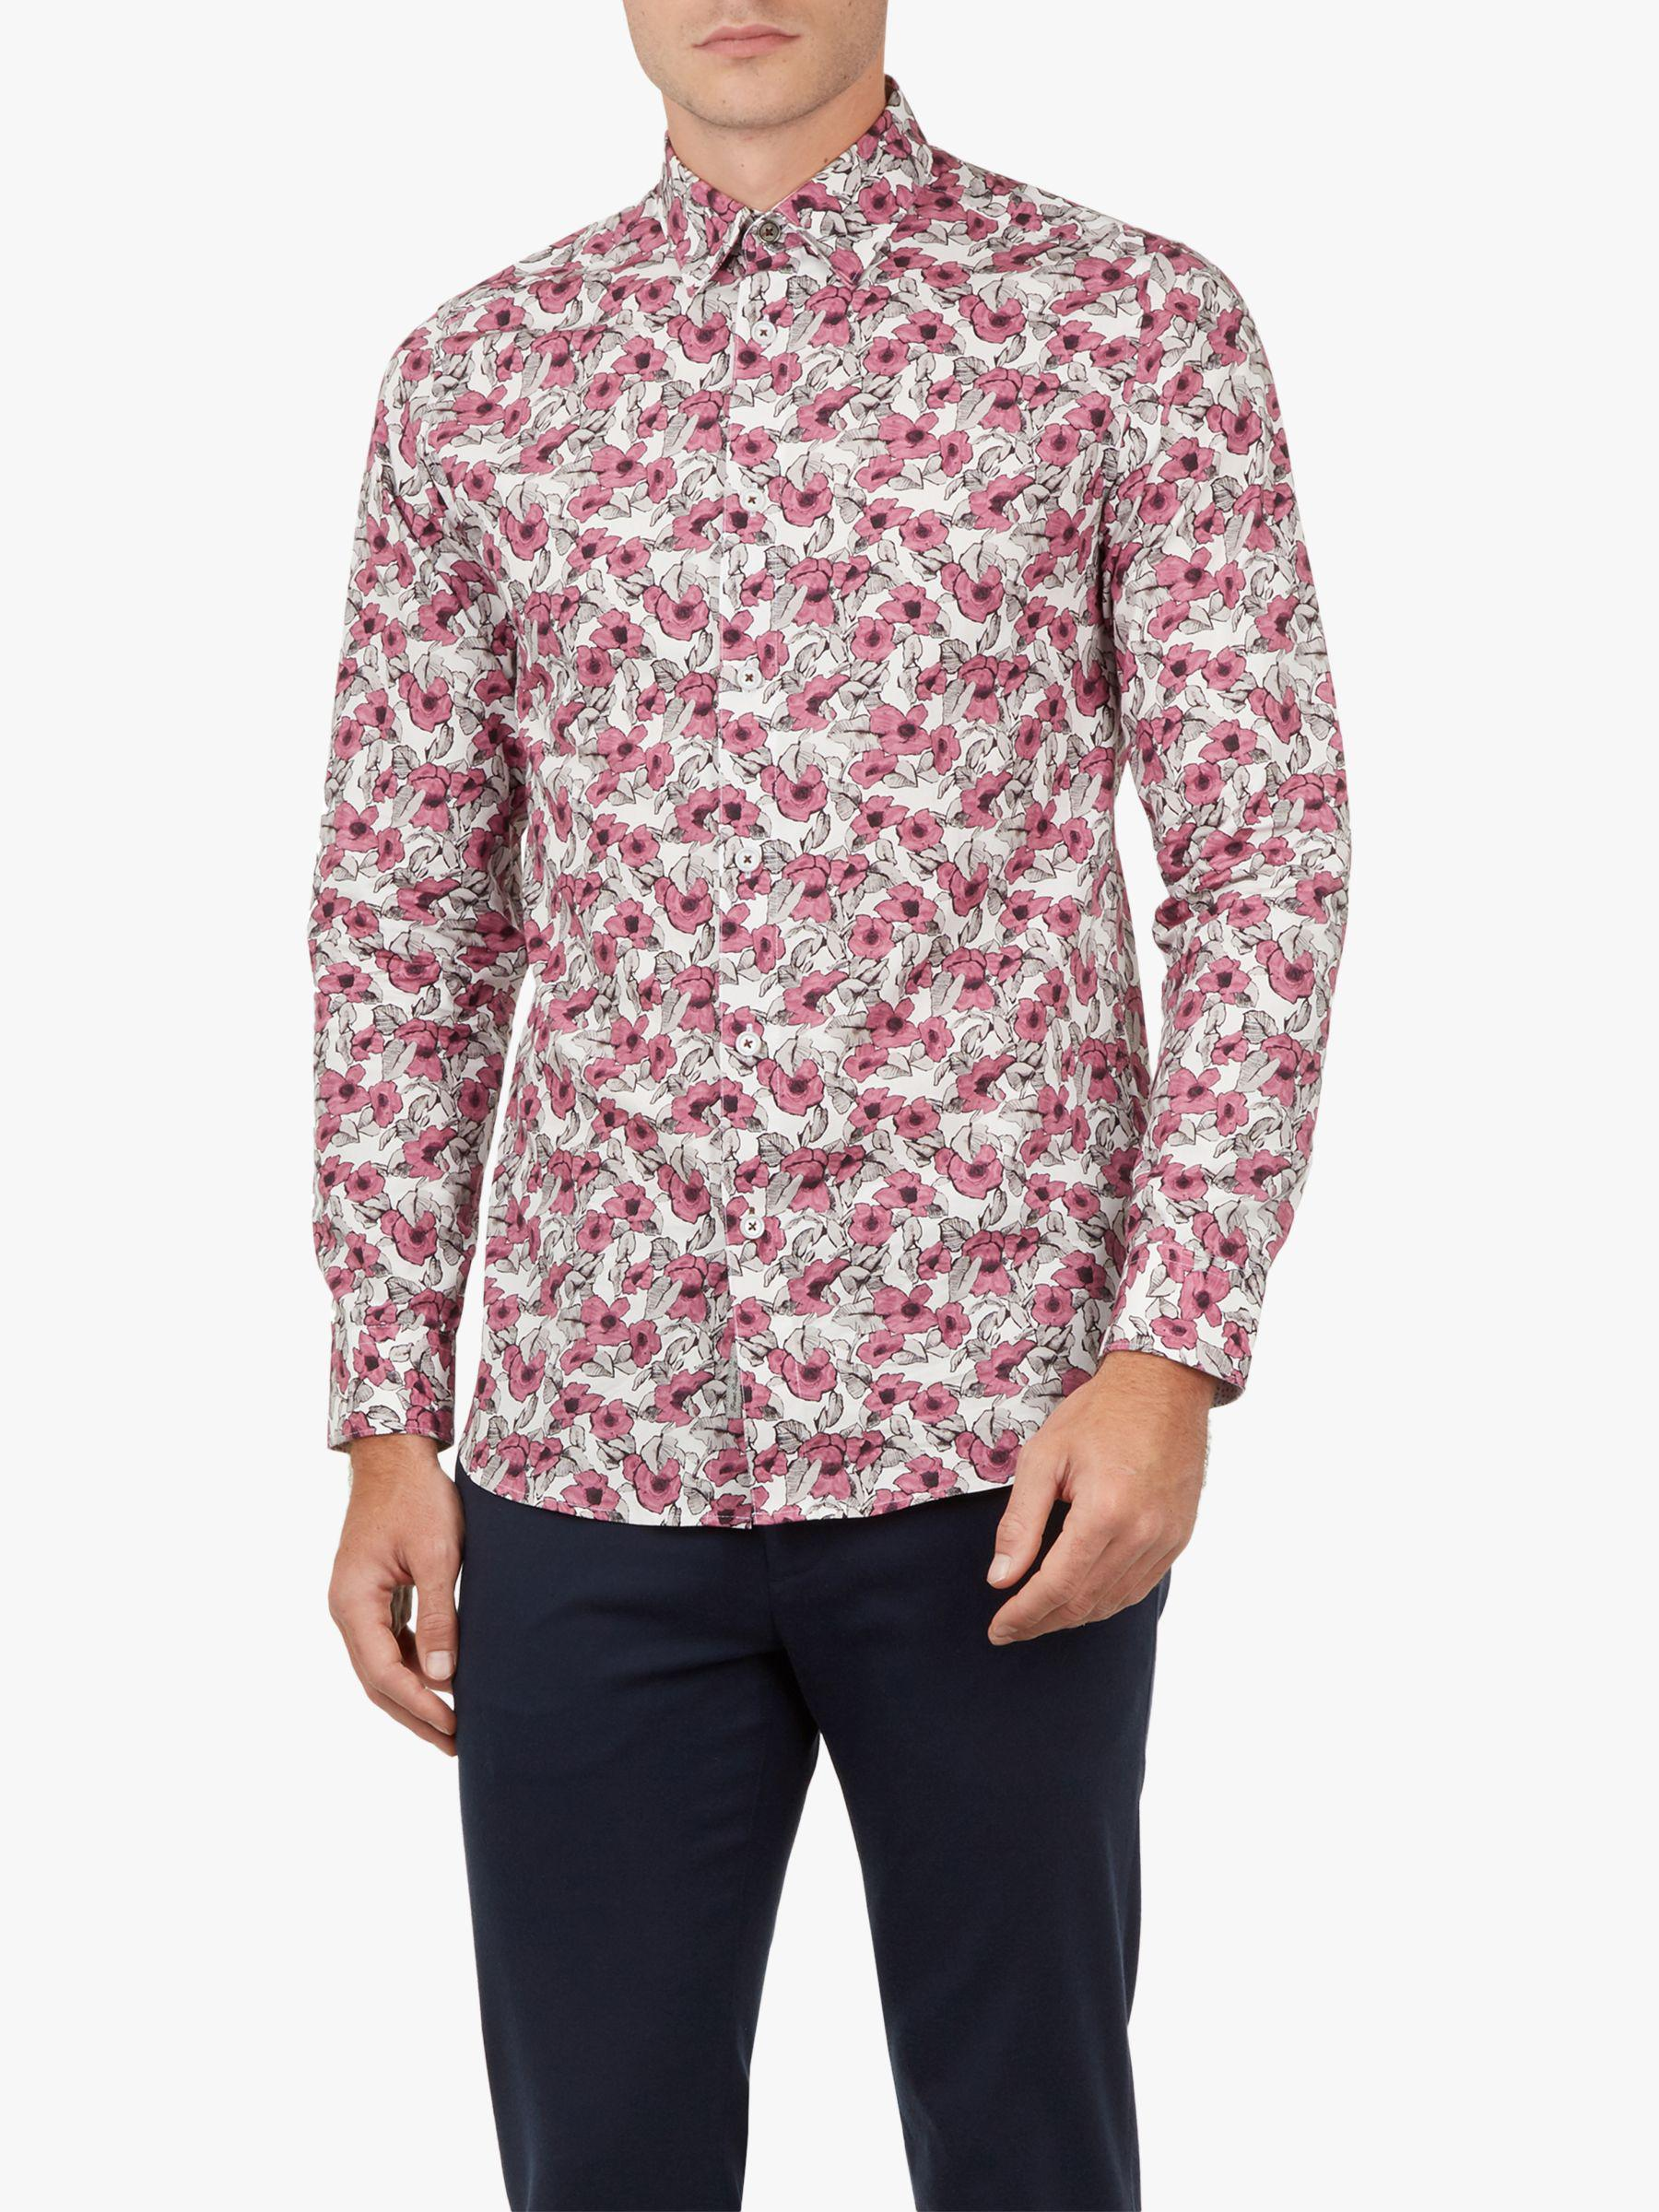 07616afe5 Ted Baker Croydon Long Sleeve Floral Shirt in Pink for Men - Lyst